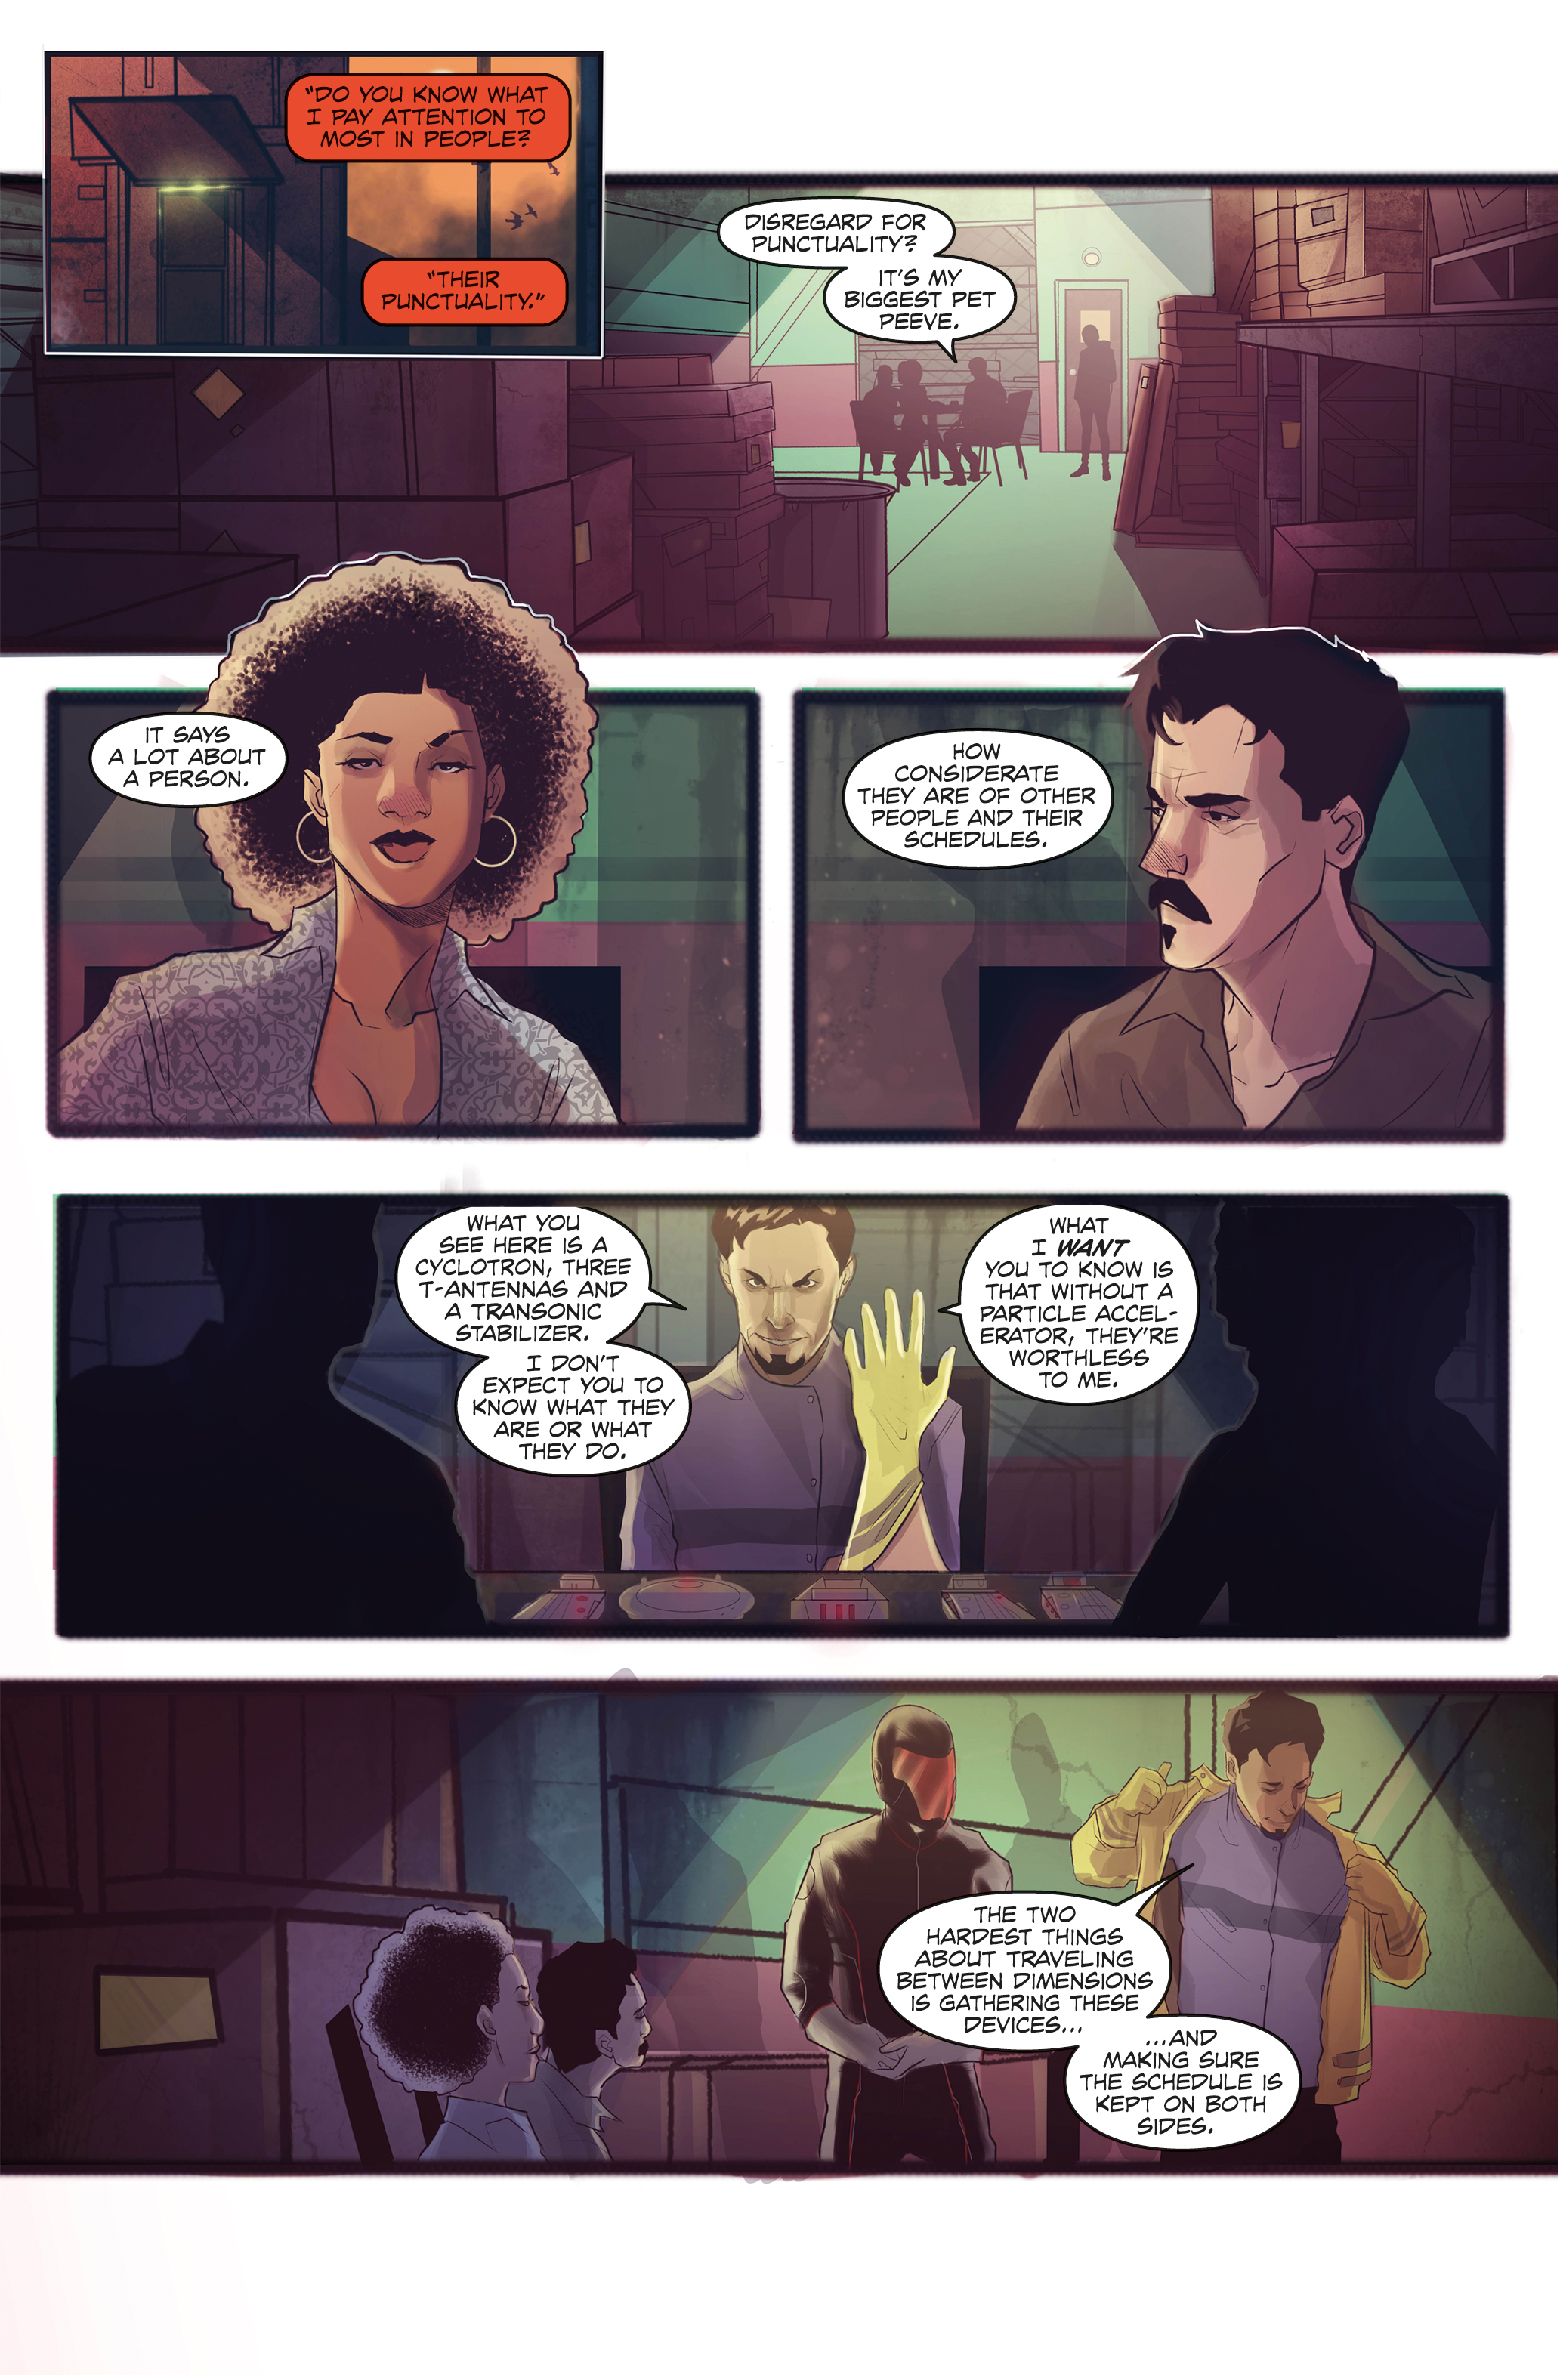 Shelter Division #2 Page 8.jpg